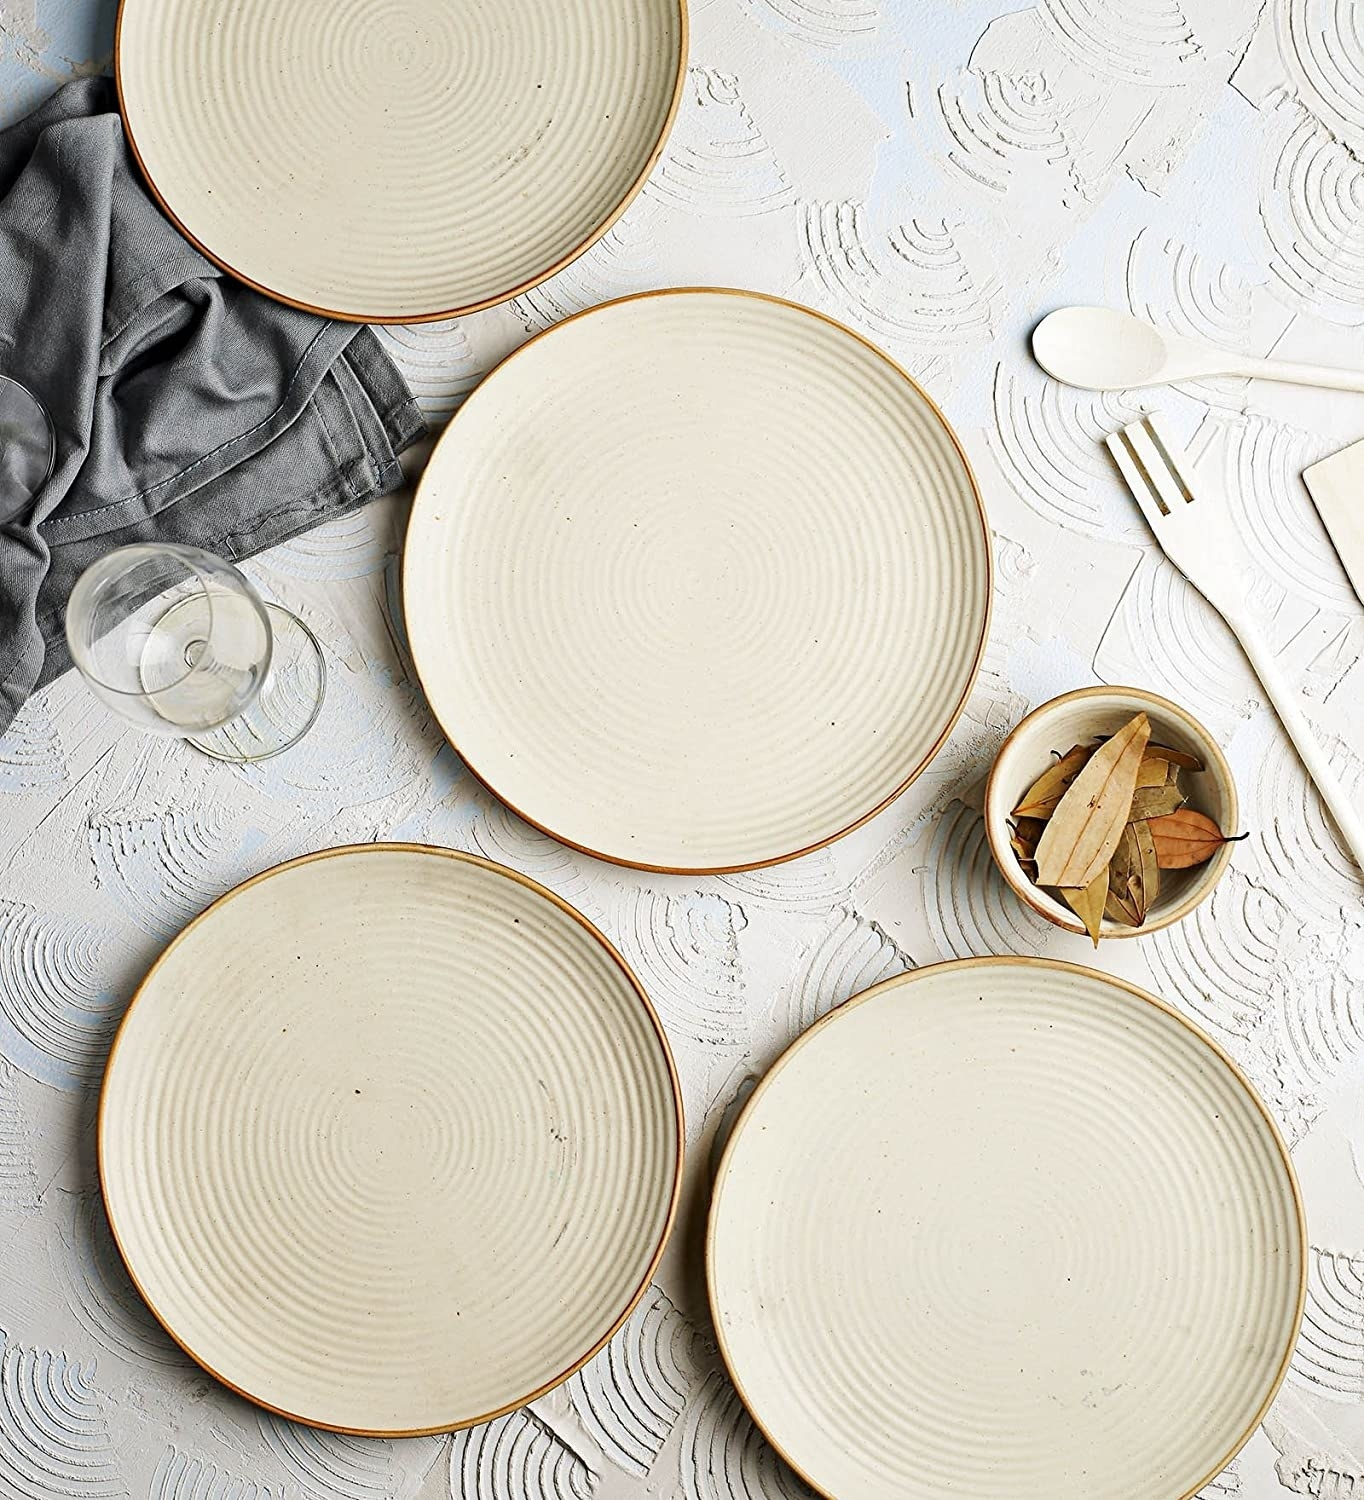 Ceramic plates on a table